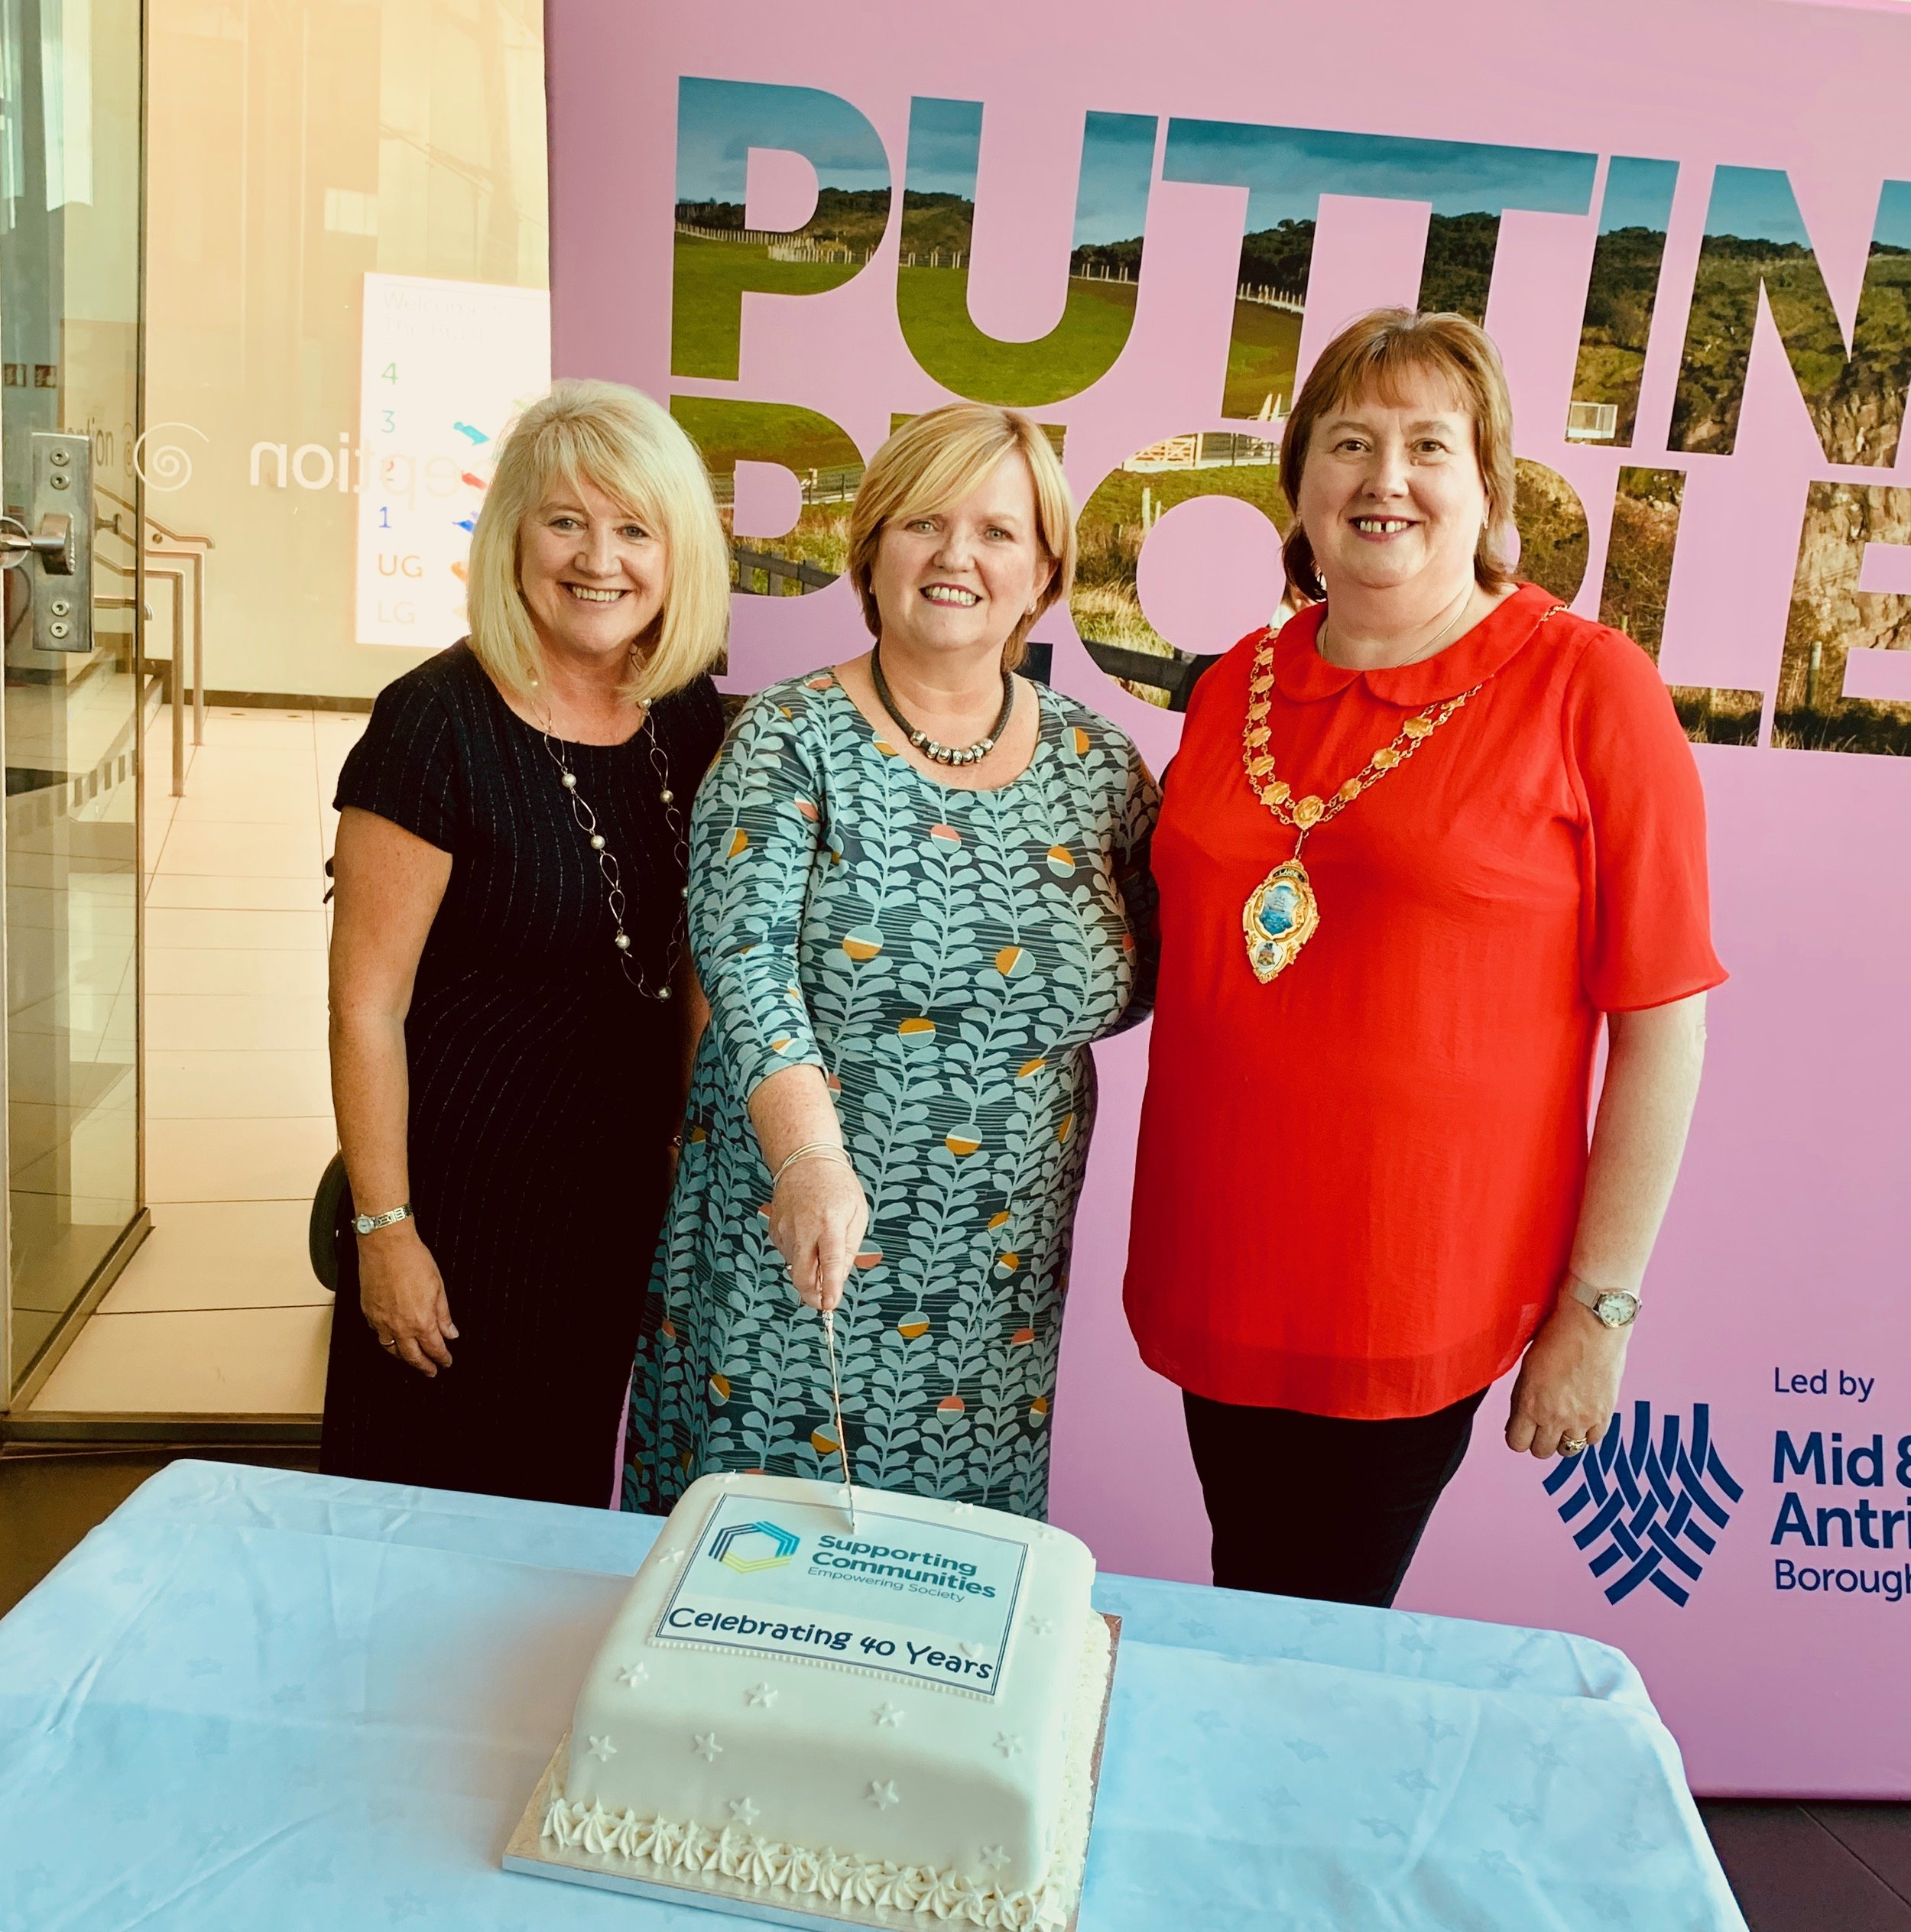 Lorraine Campbell, Theresa Patton, and Cllr. Maureen Morrow make it official with an anniversary cake!